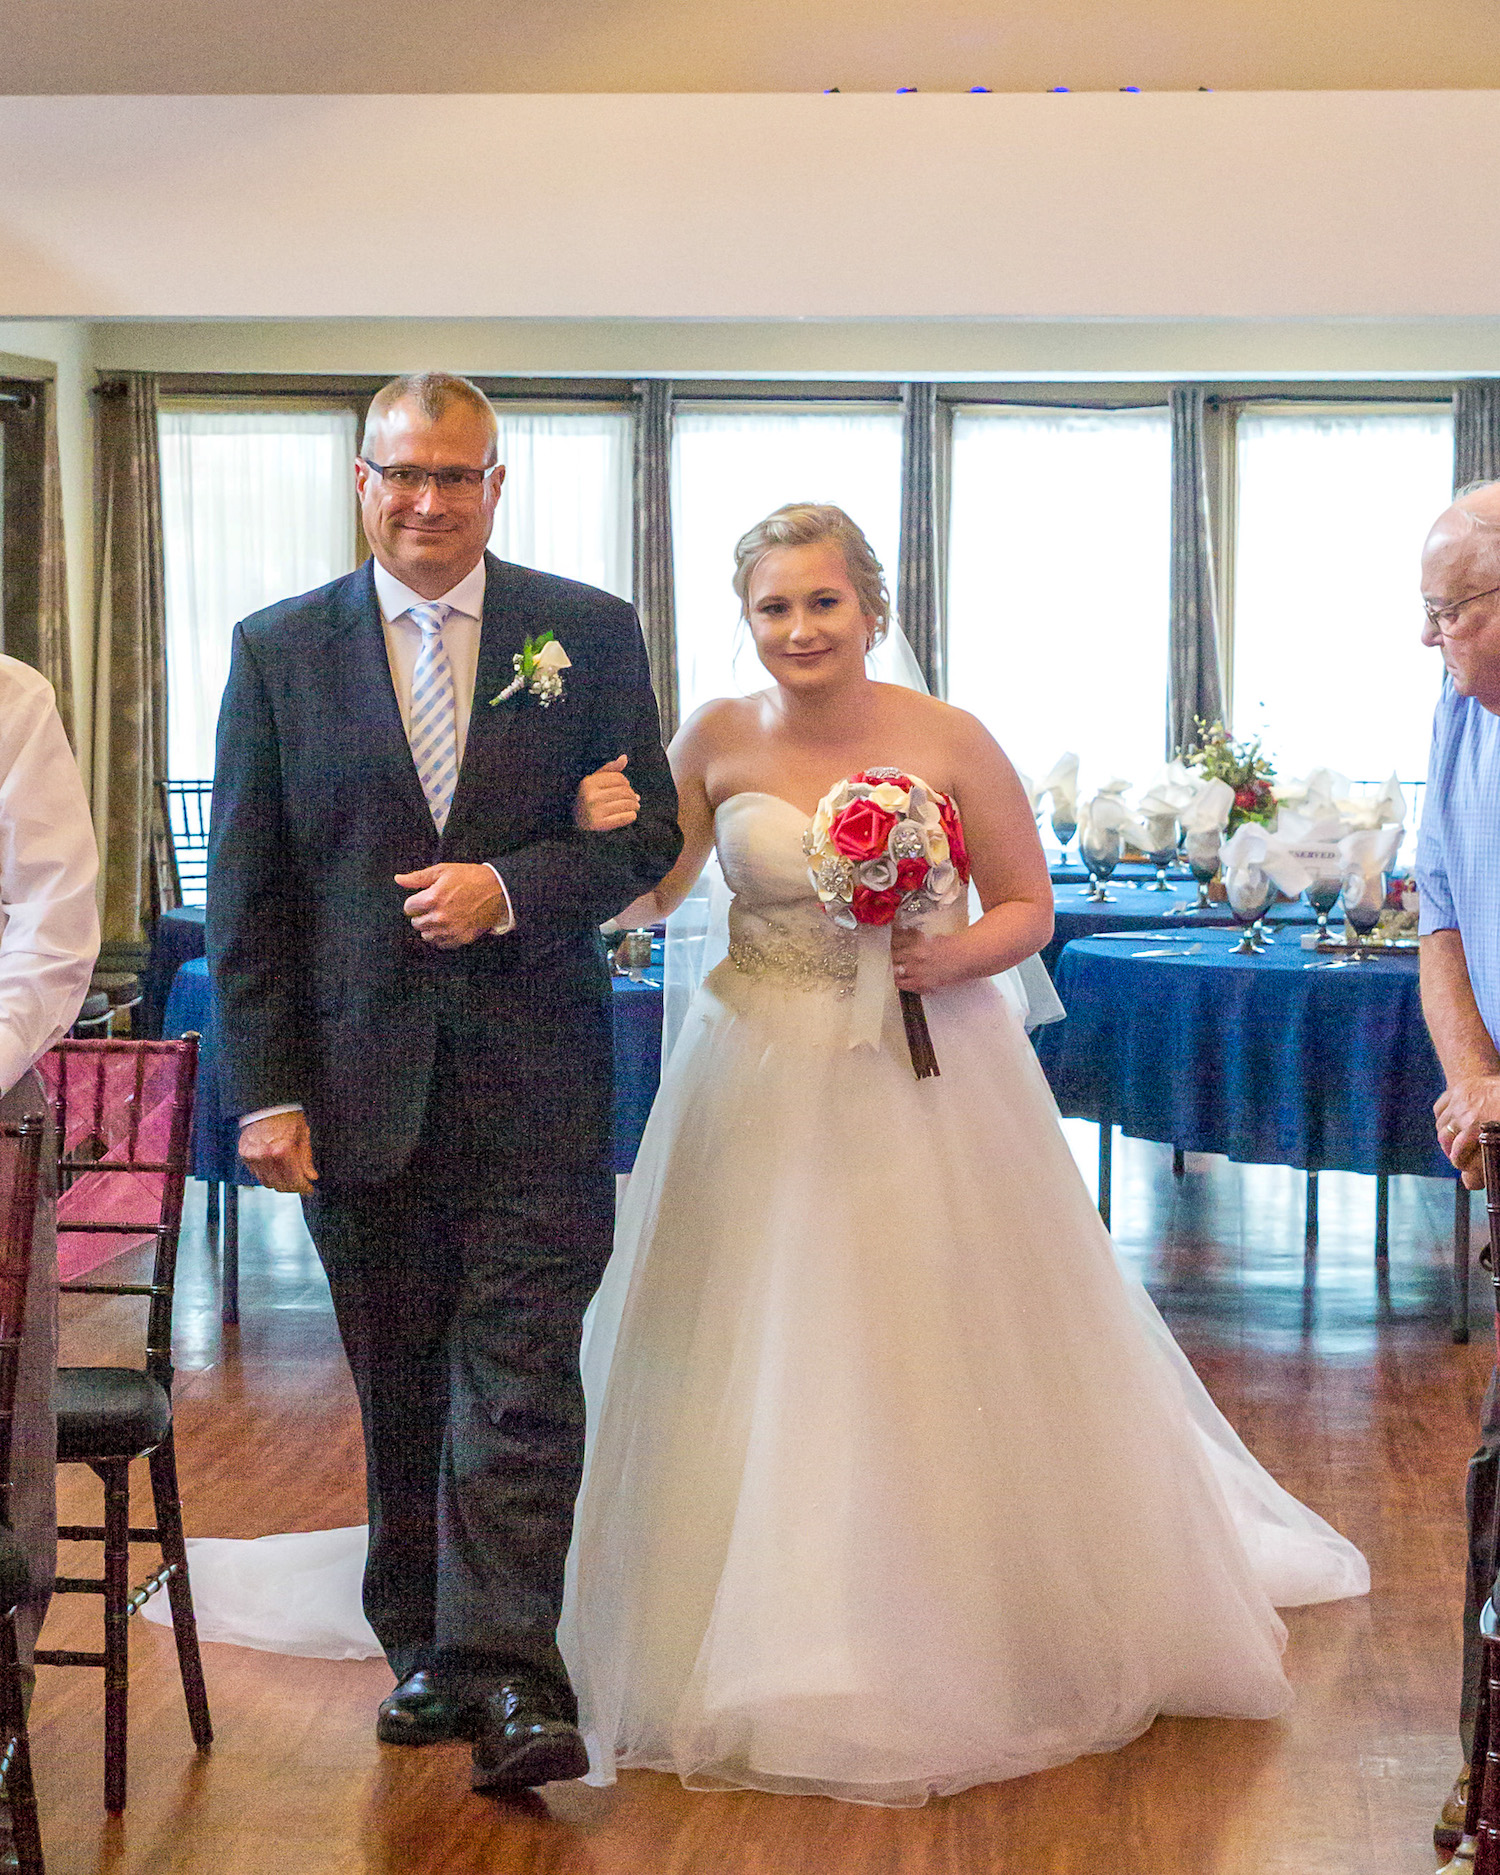 Rosehenge wedding, Lakeville wedding venue, affordable wedding venue in south Minnesota, bride escorted by her father